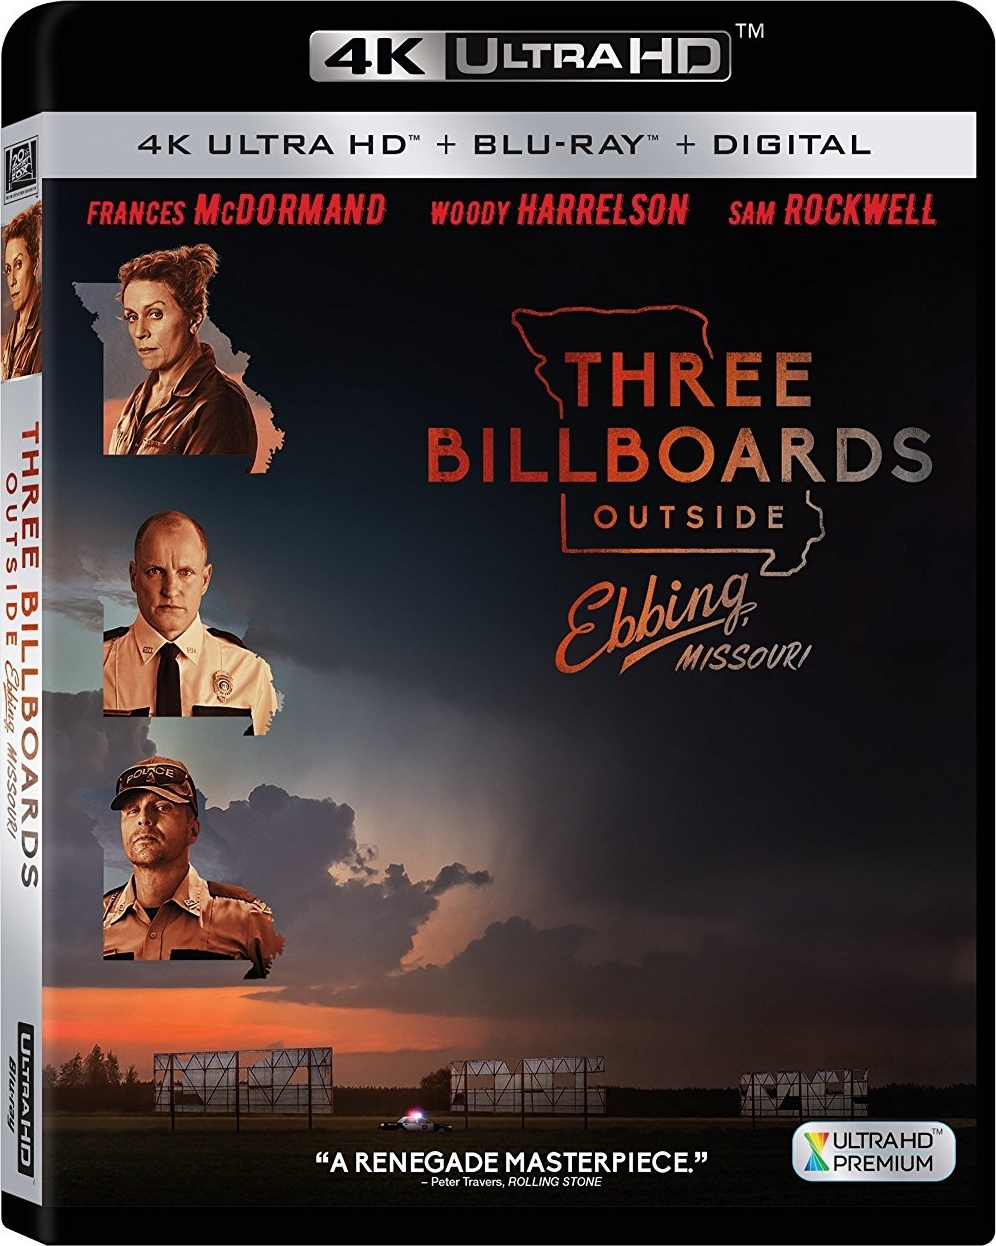 Three Billboards Outside Ebbing, Missouri 4K (2017) Ultra HD Blu-ray